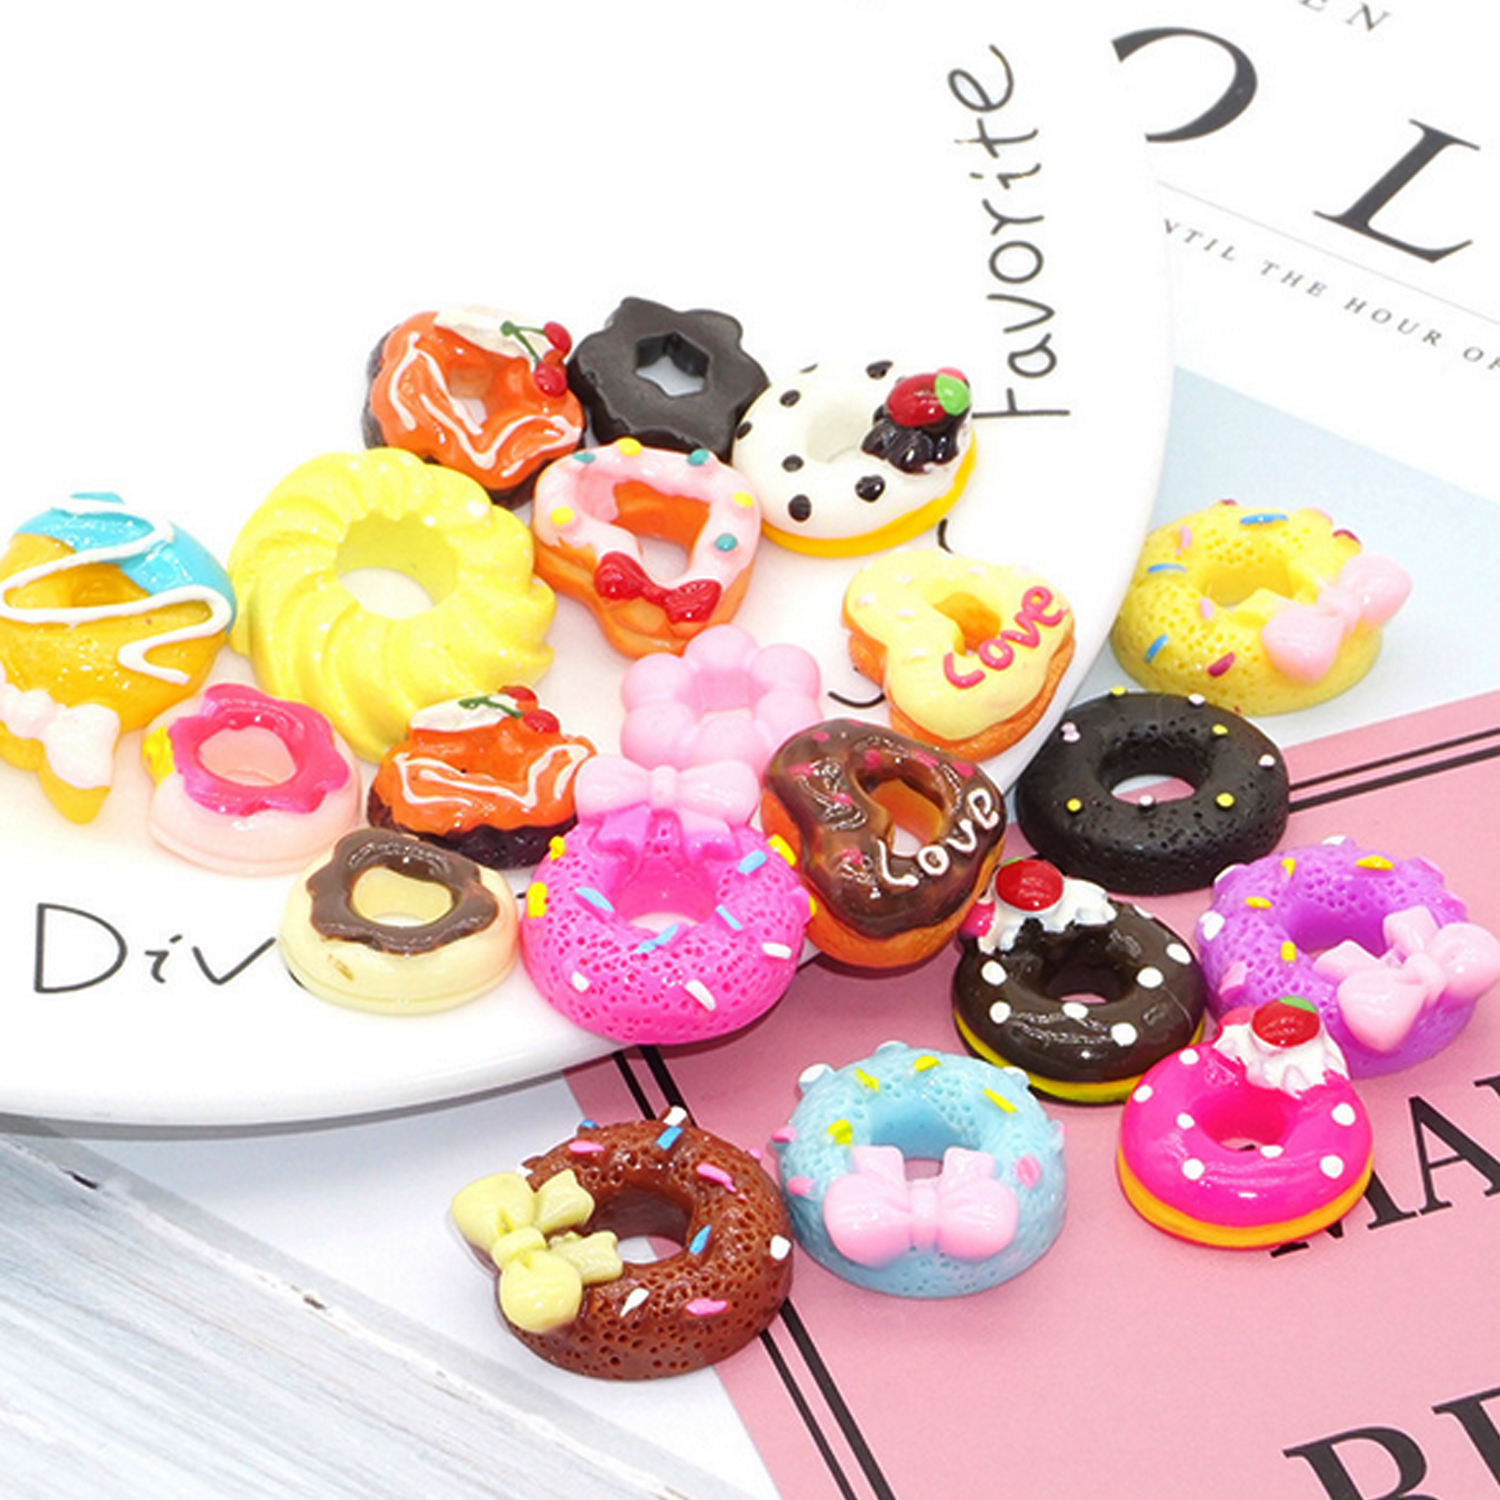 Besegad 10PCS Simulated Kawaii Miniature Mini Resin Foods Toy Accessories For Barbie Children Girls Birthday Gift Random Color